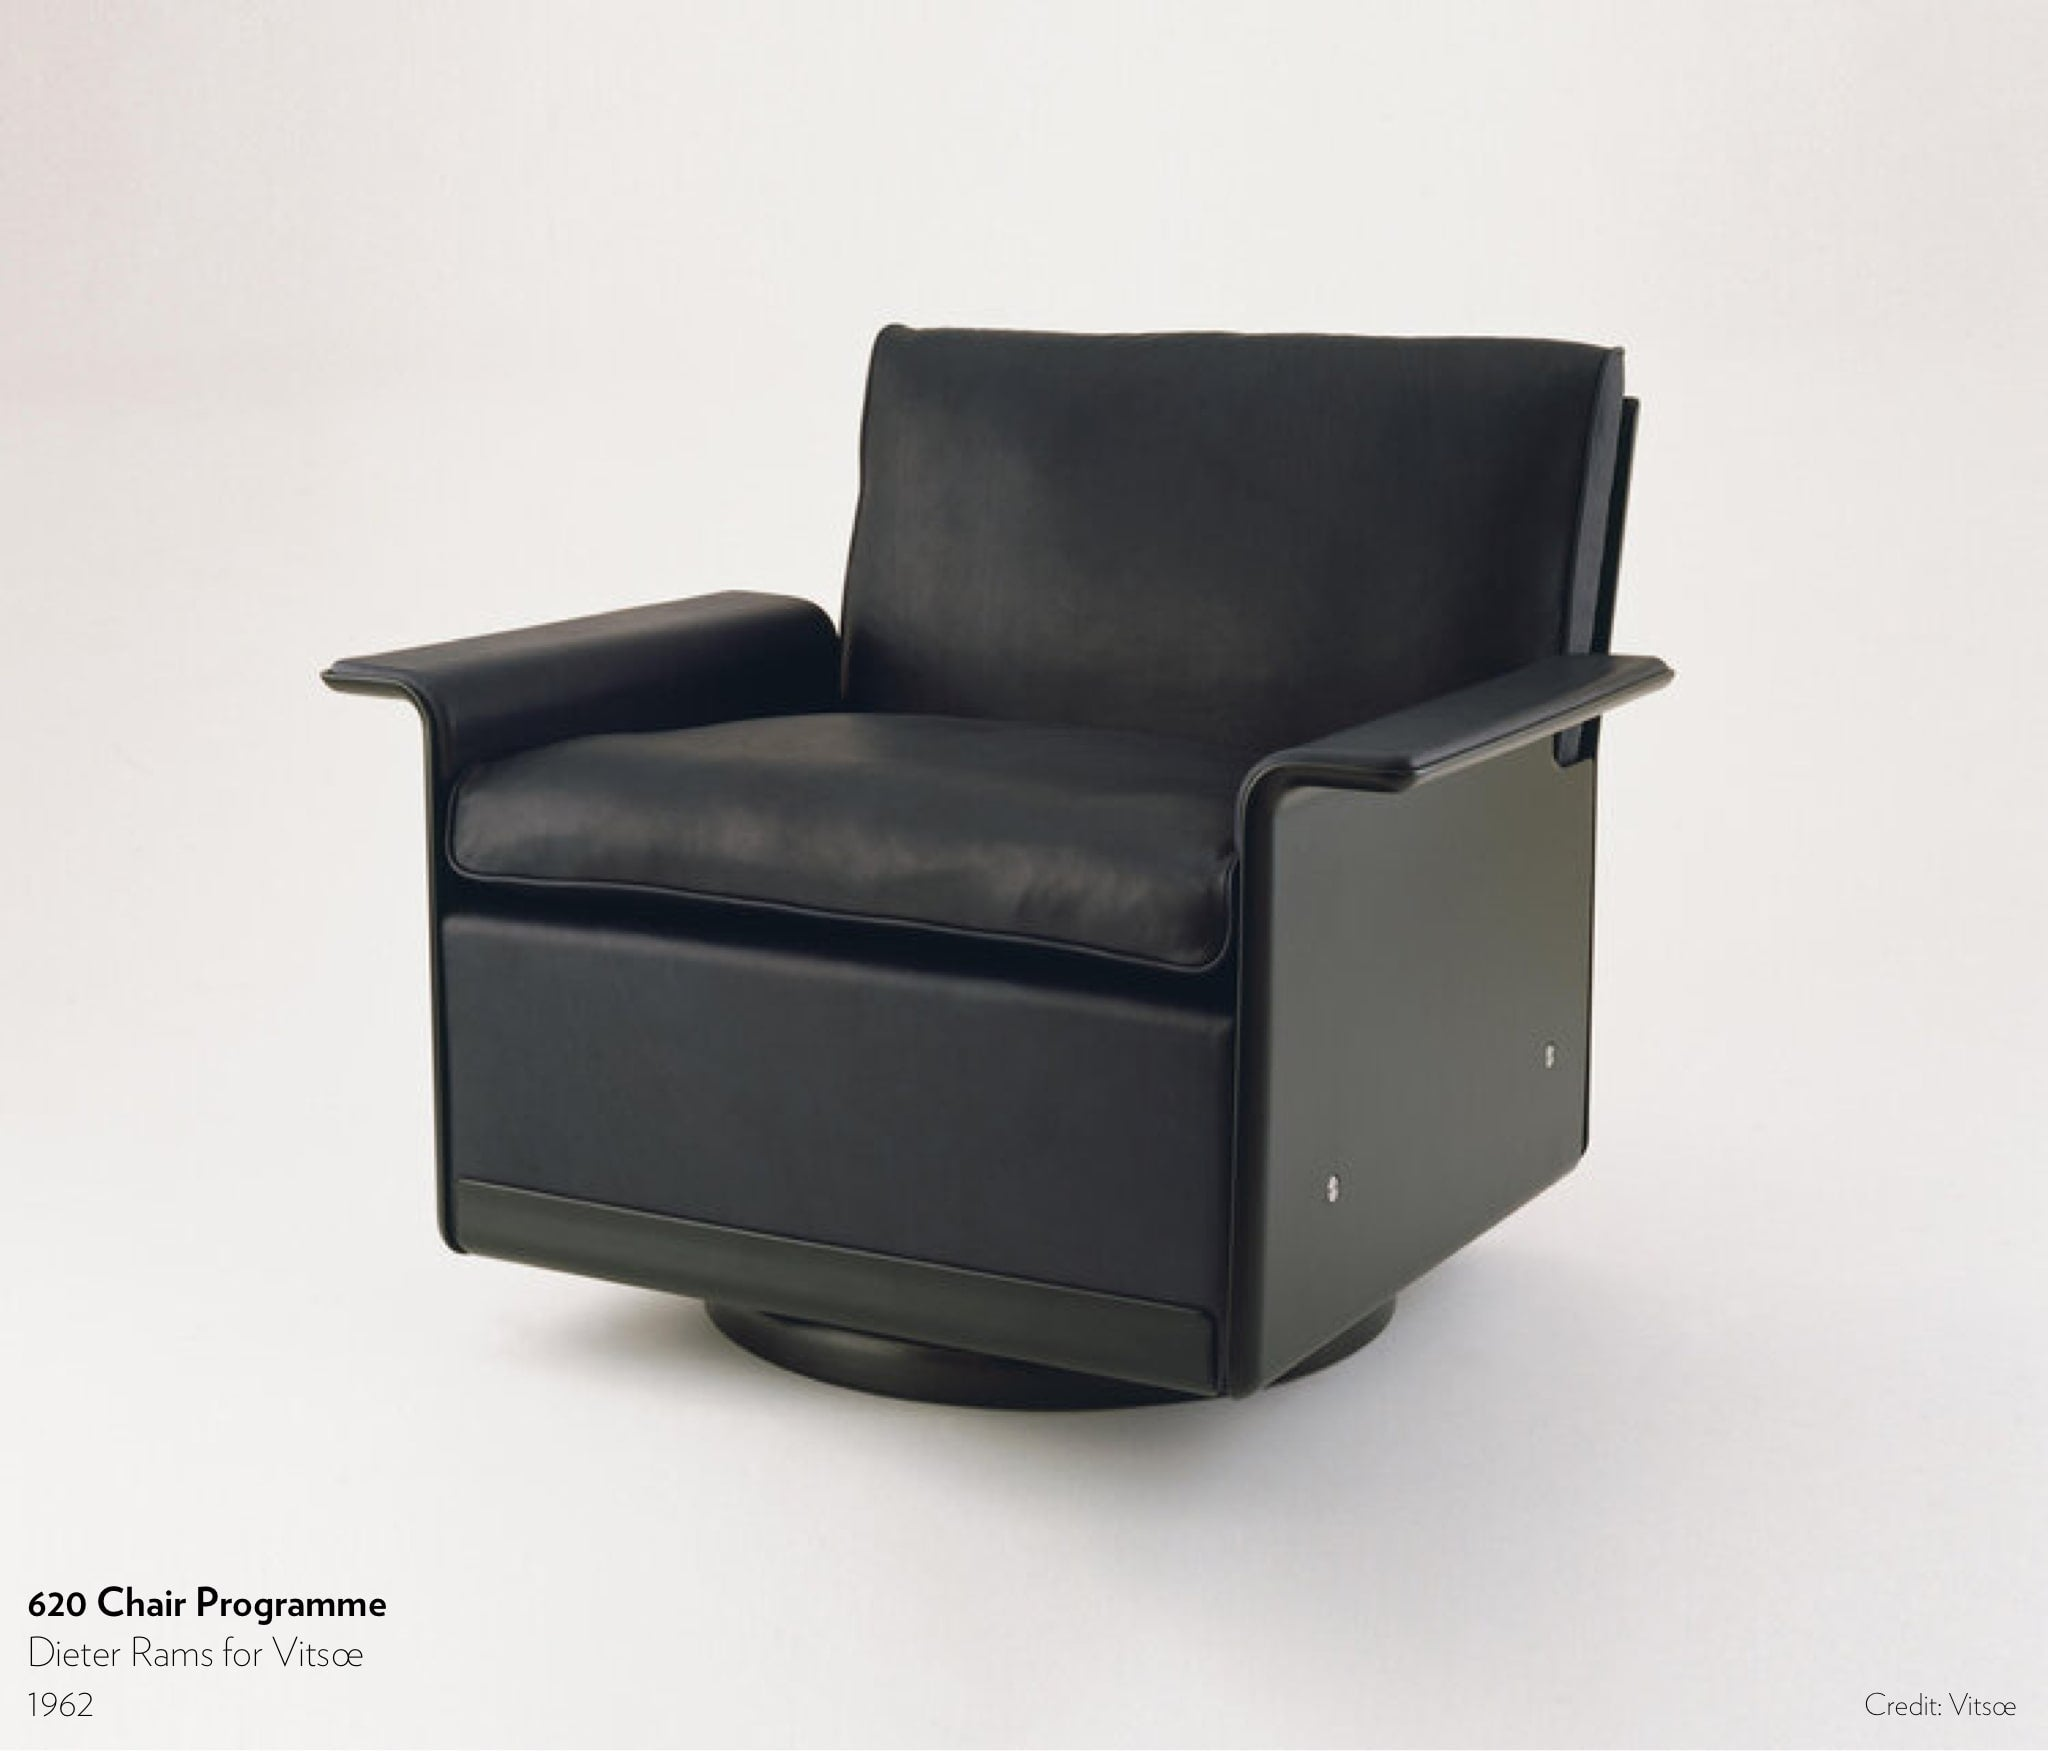 620 Chair Programme designed by Dieter Rams for Vitsoe in 1962.